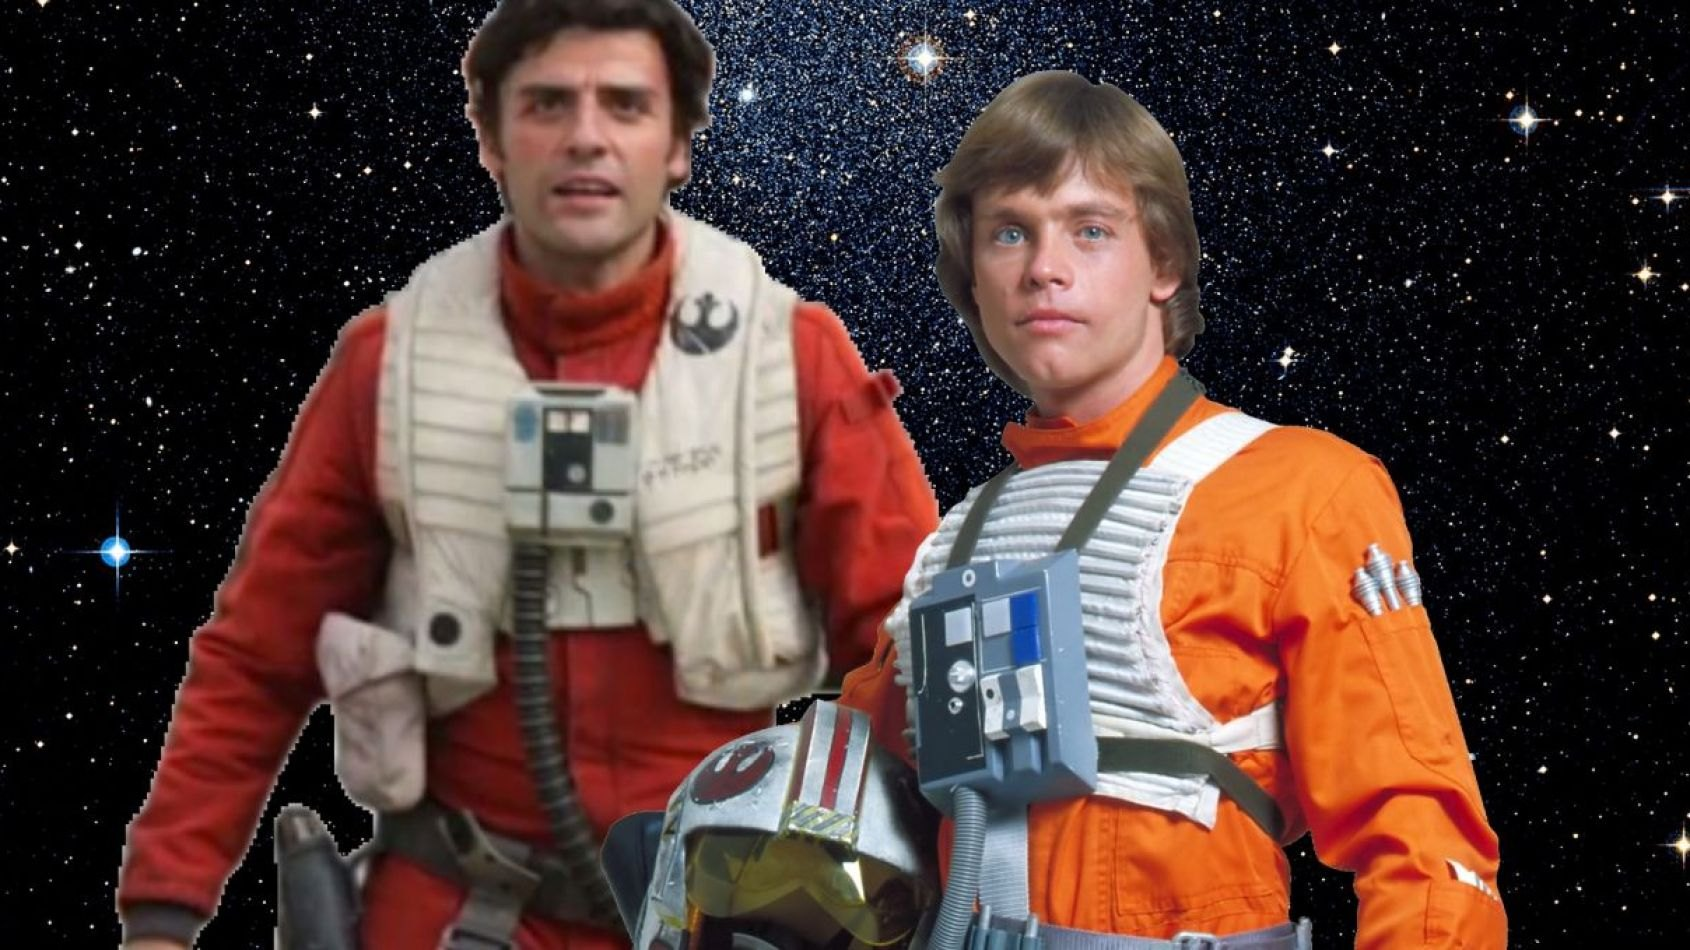 Les points communs de Luke Skywalker et Poe Dameron